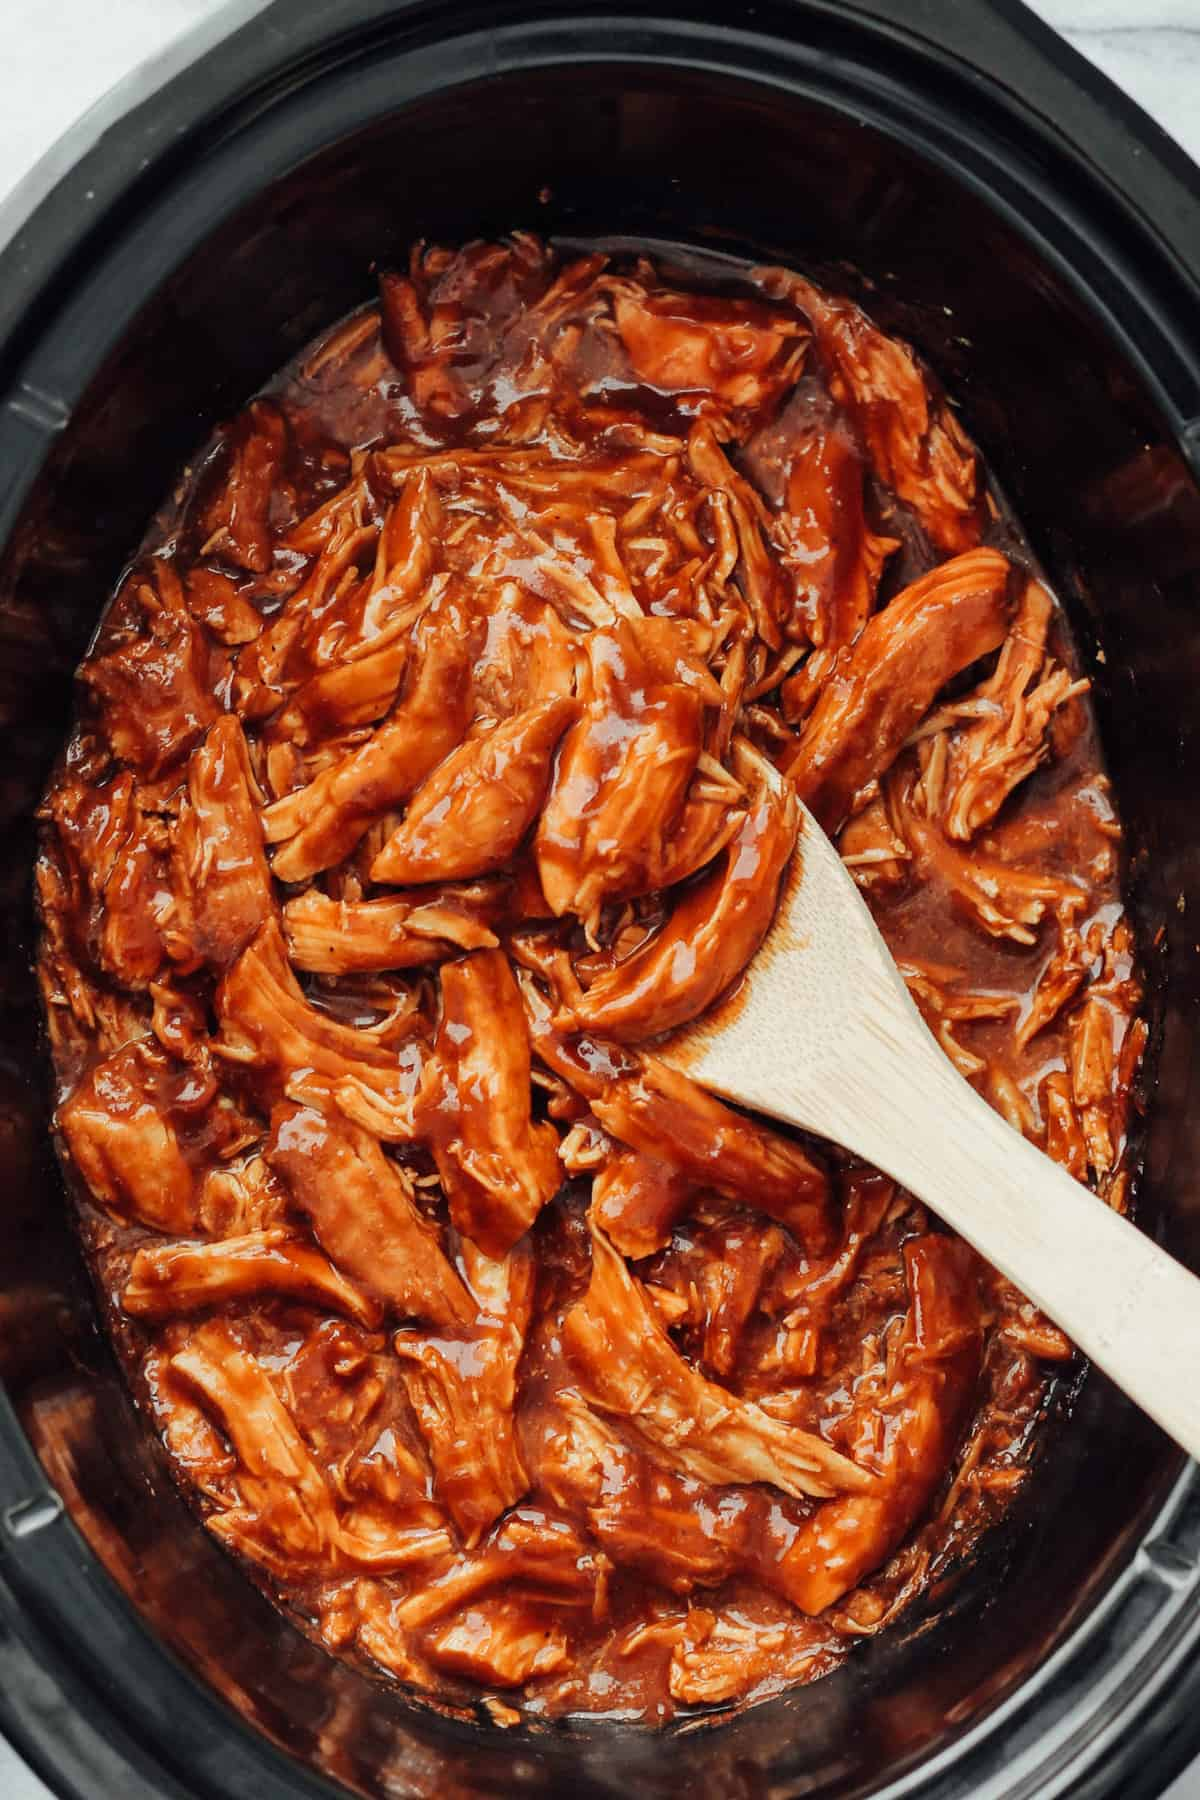 shredded chicken in slow cooker